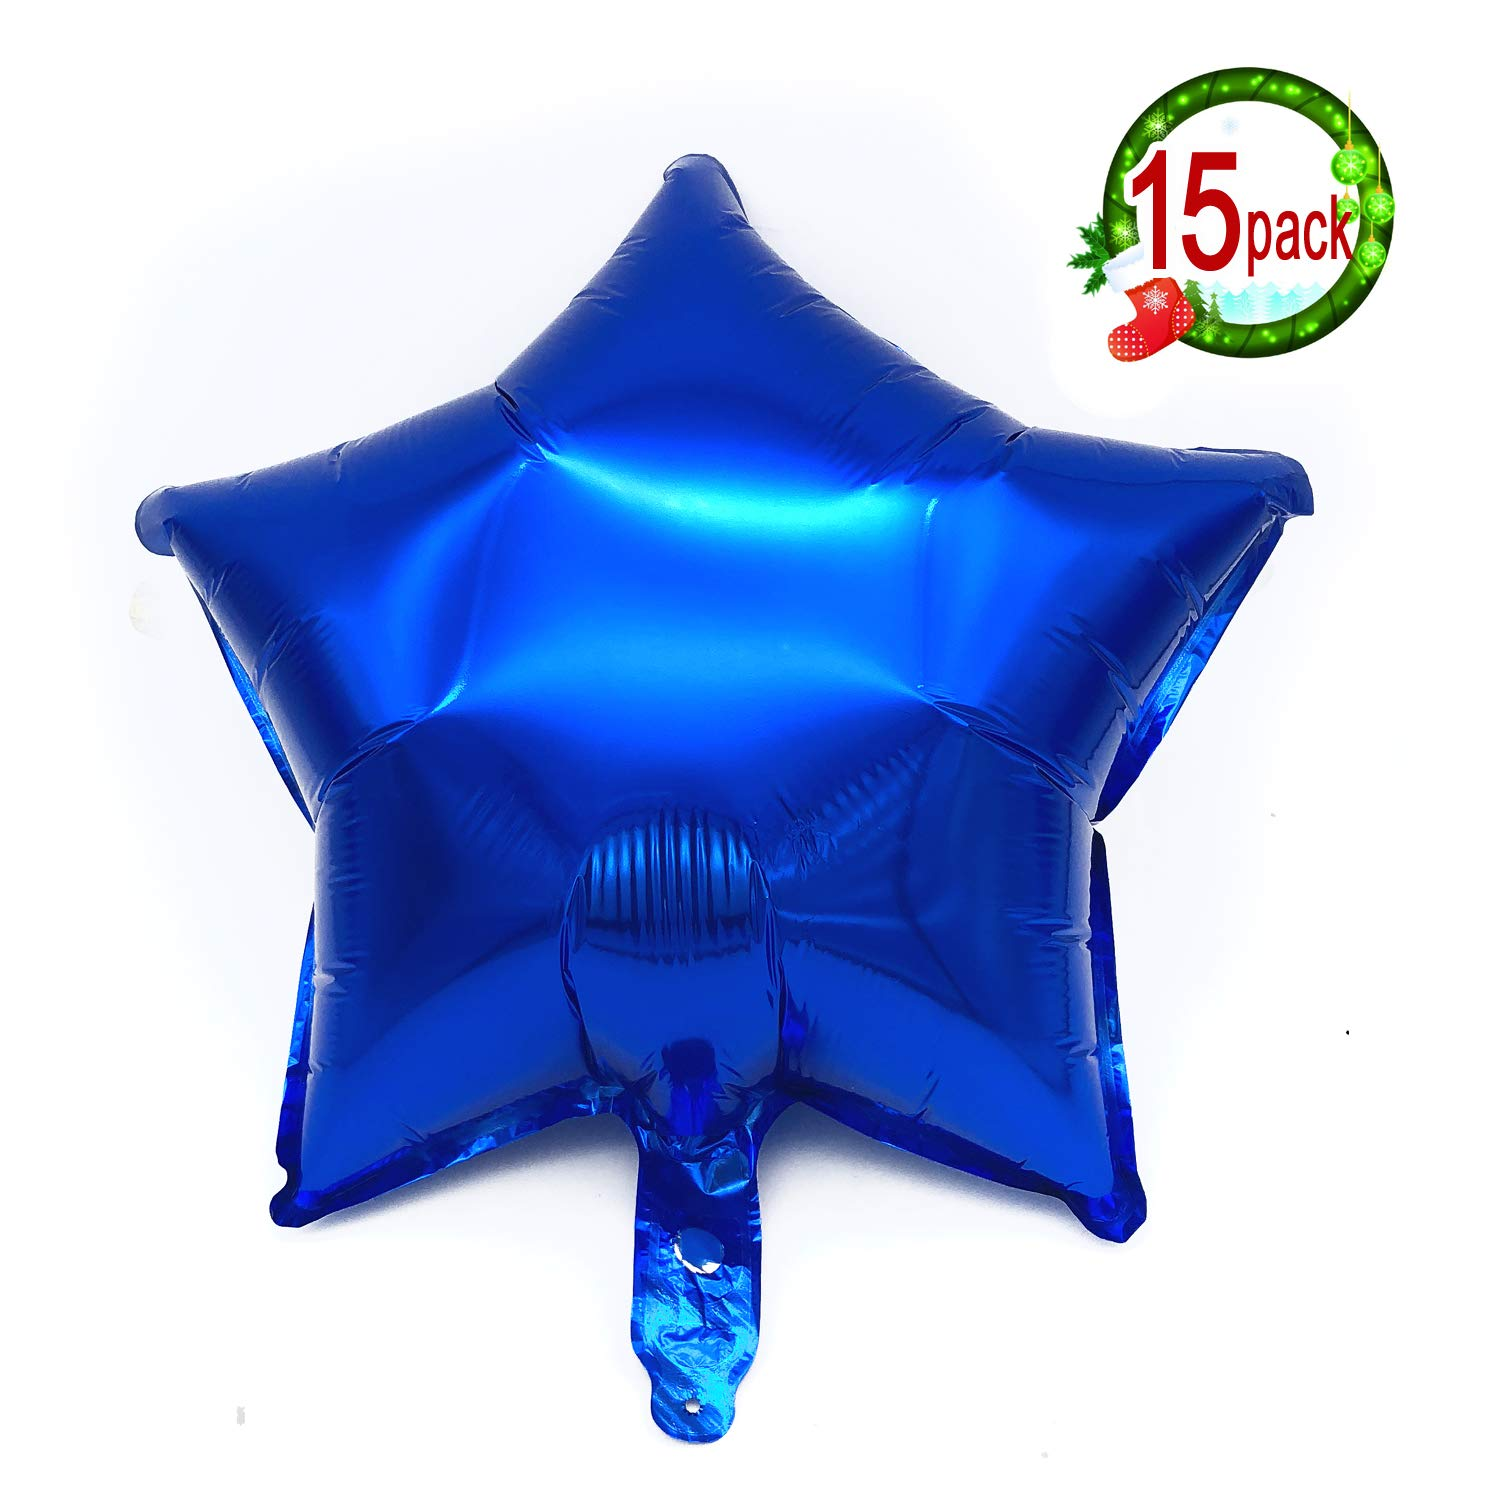 """15PCS 18/"""" Five Star Shape Foil Balloons Mylar Balloons for Graduation Party Supplies Birthday Party Wedding Decoration Gold jinzan"""